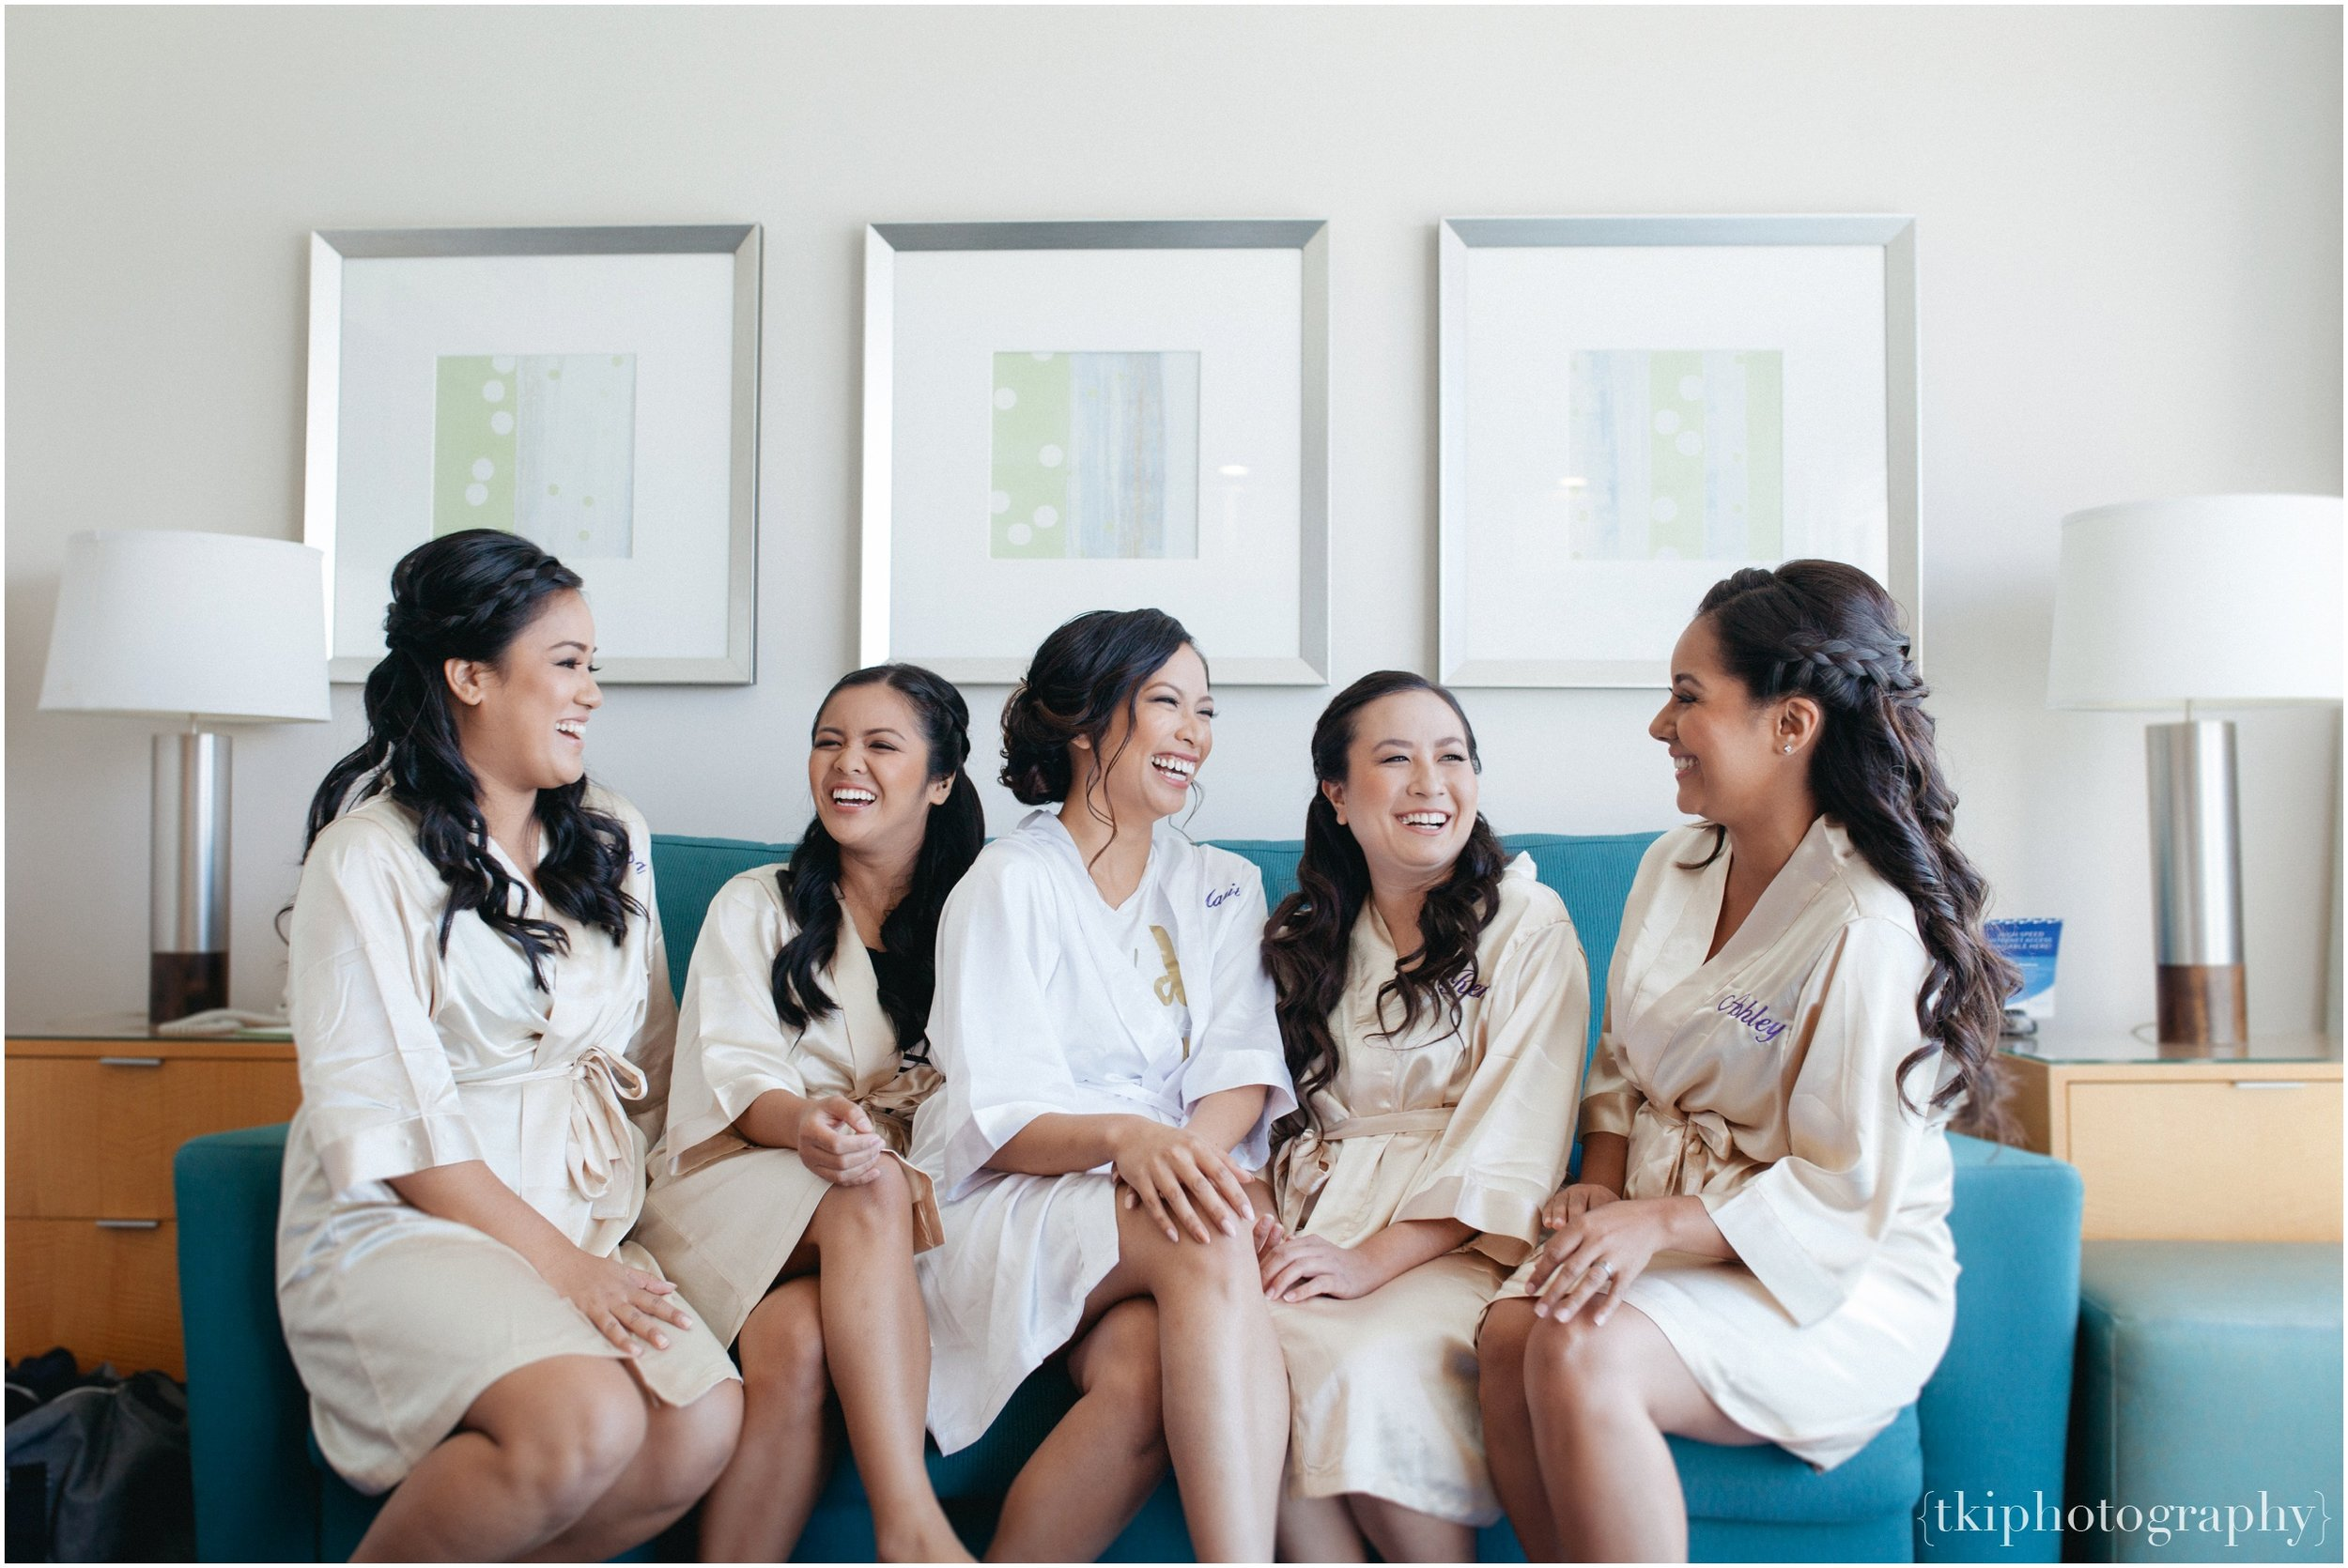 The morning was beginning nice and fresh, with Mari's best ladies beside her on her very special day. They each got their hair & make up ready and as soon as I arrived, they seemed so flawless!